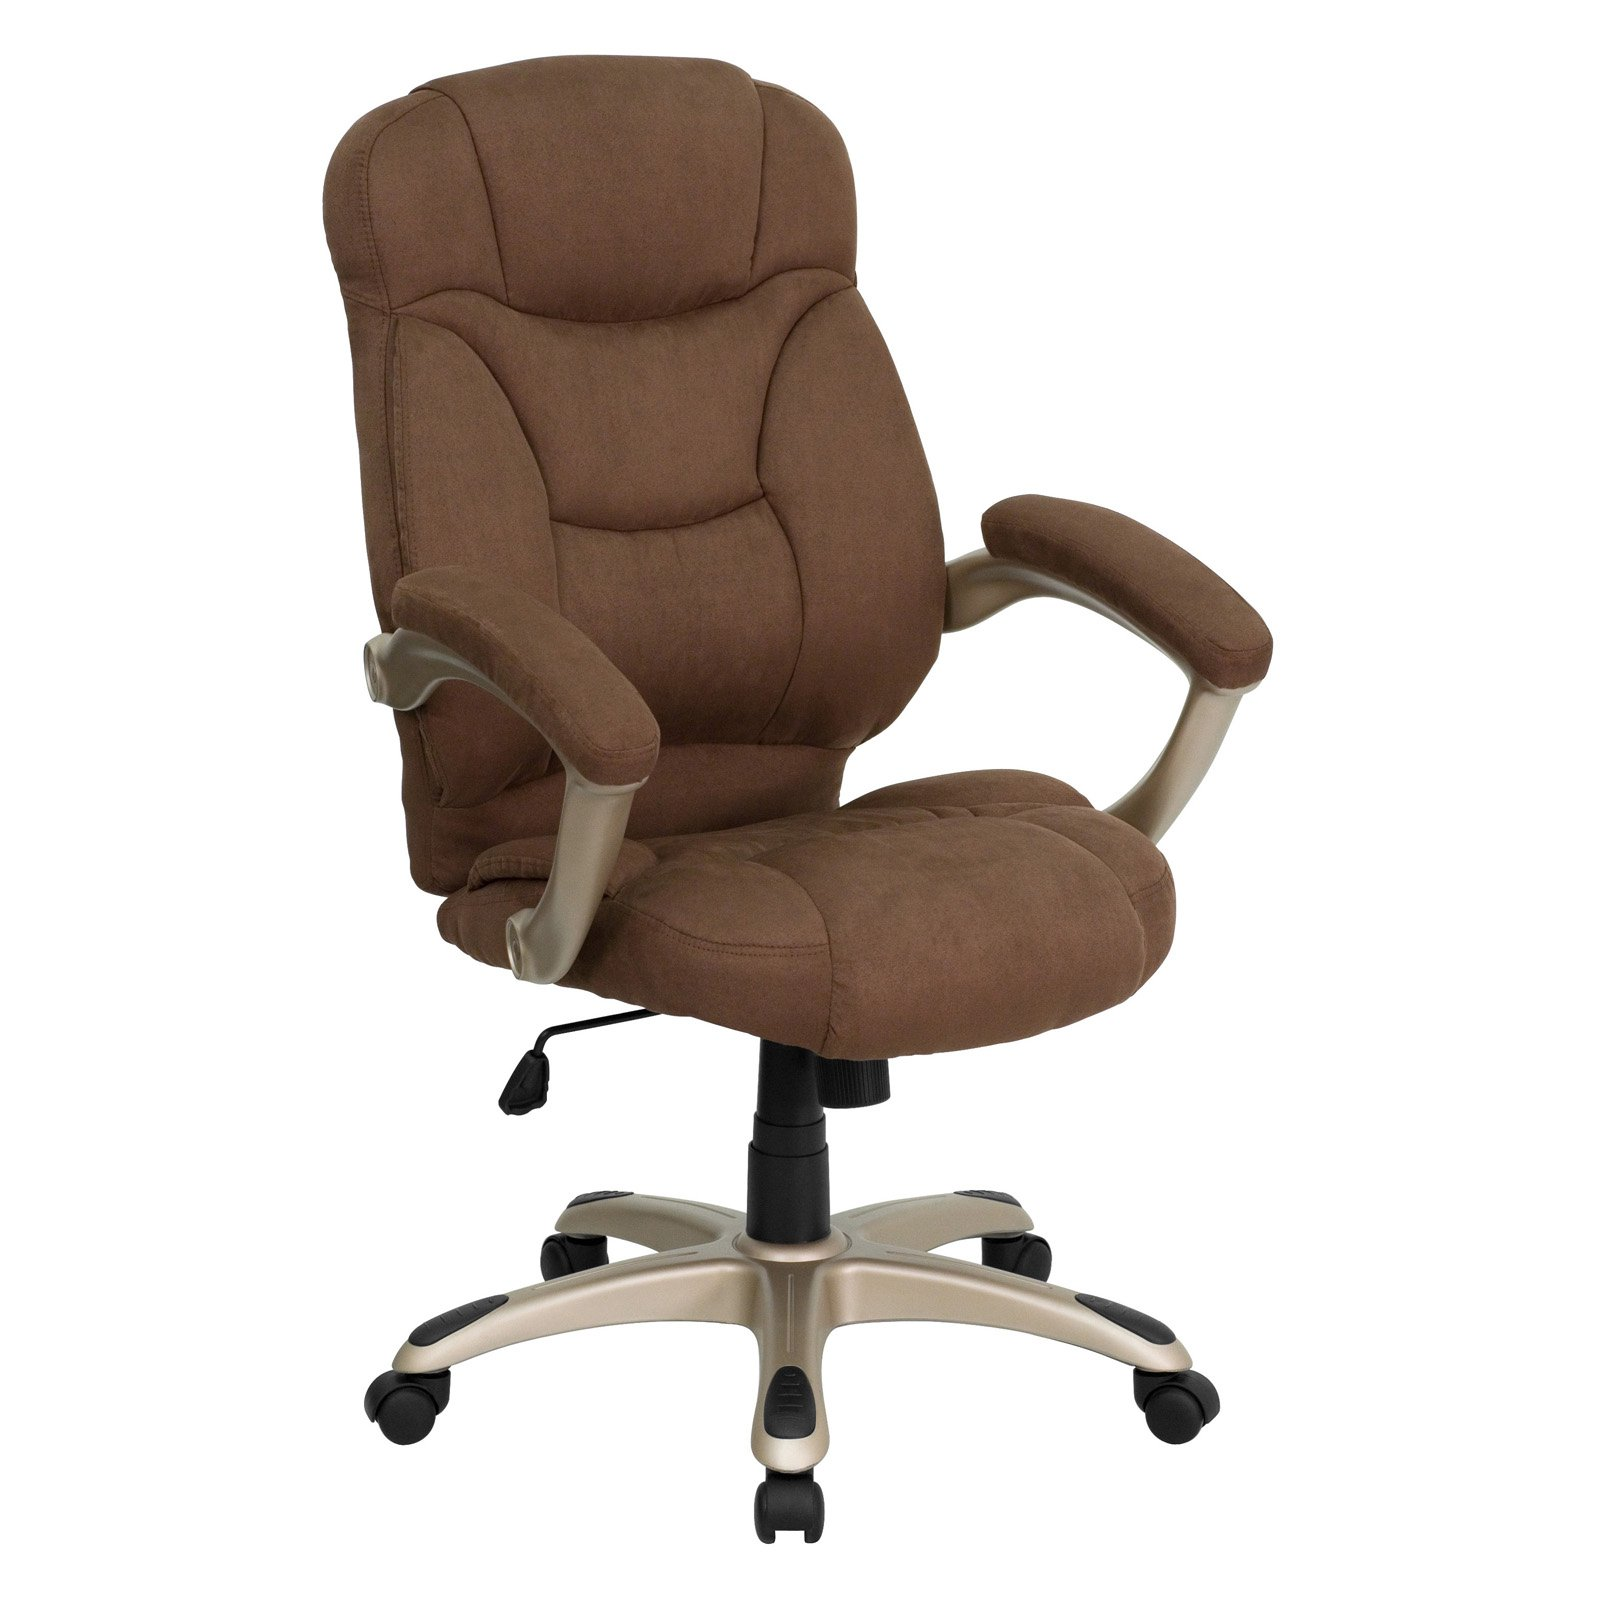 Microfiber Office Chair Microfiber High Back Office Chair Multiple Colors